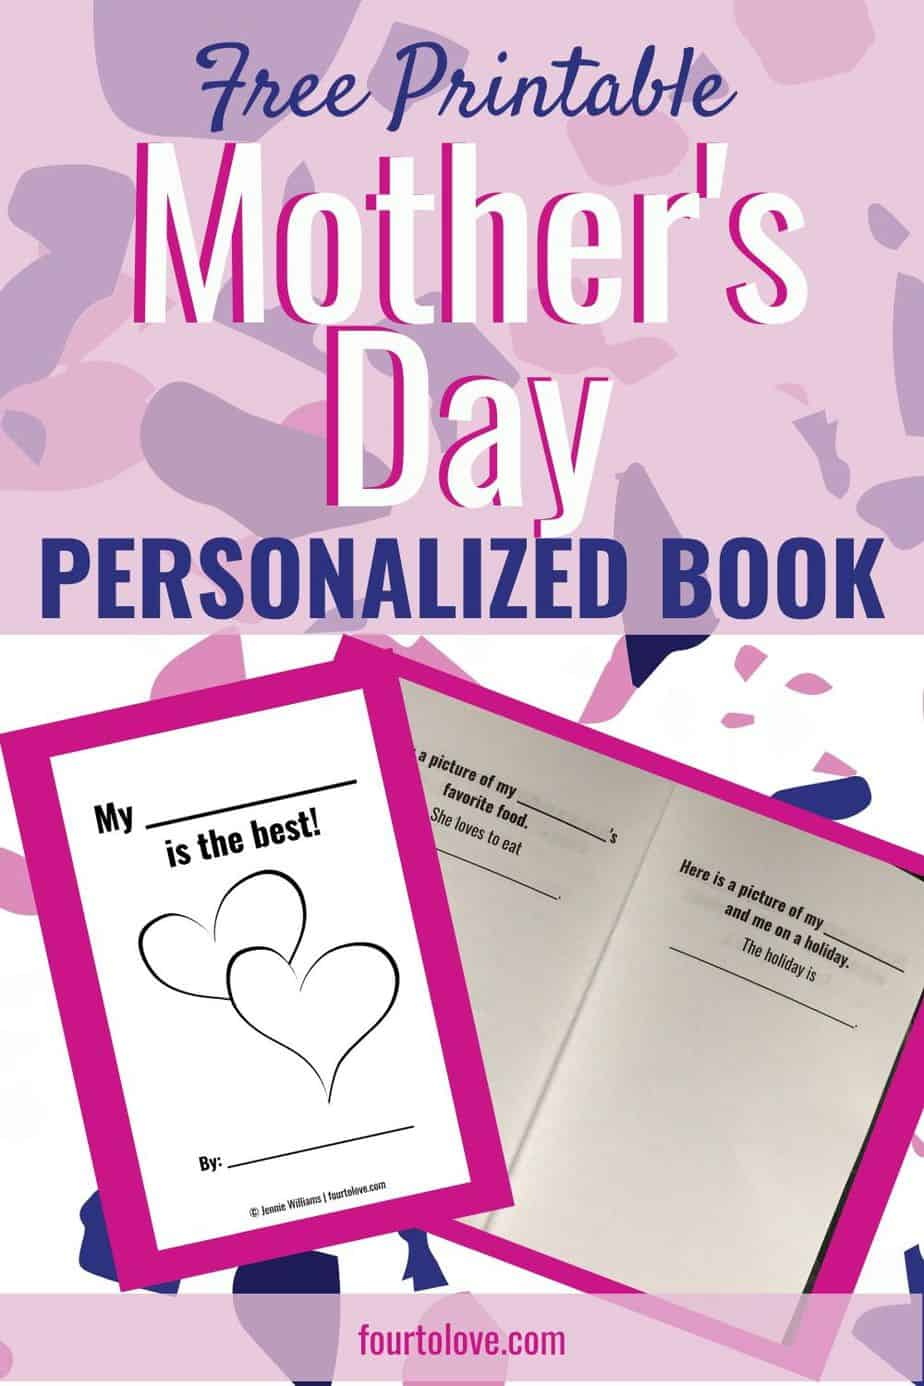 Free printable Mother's Day personalized book